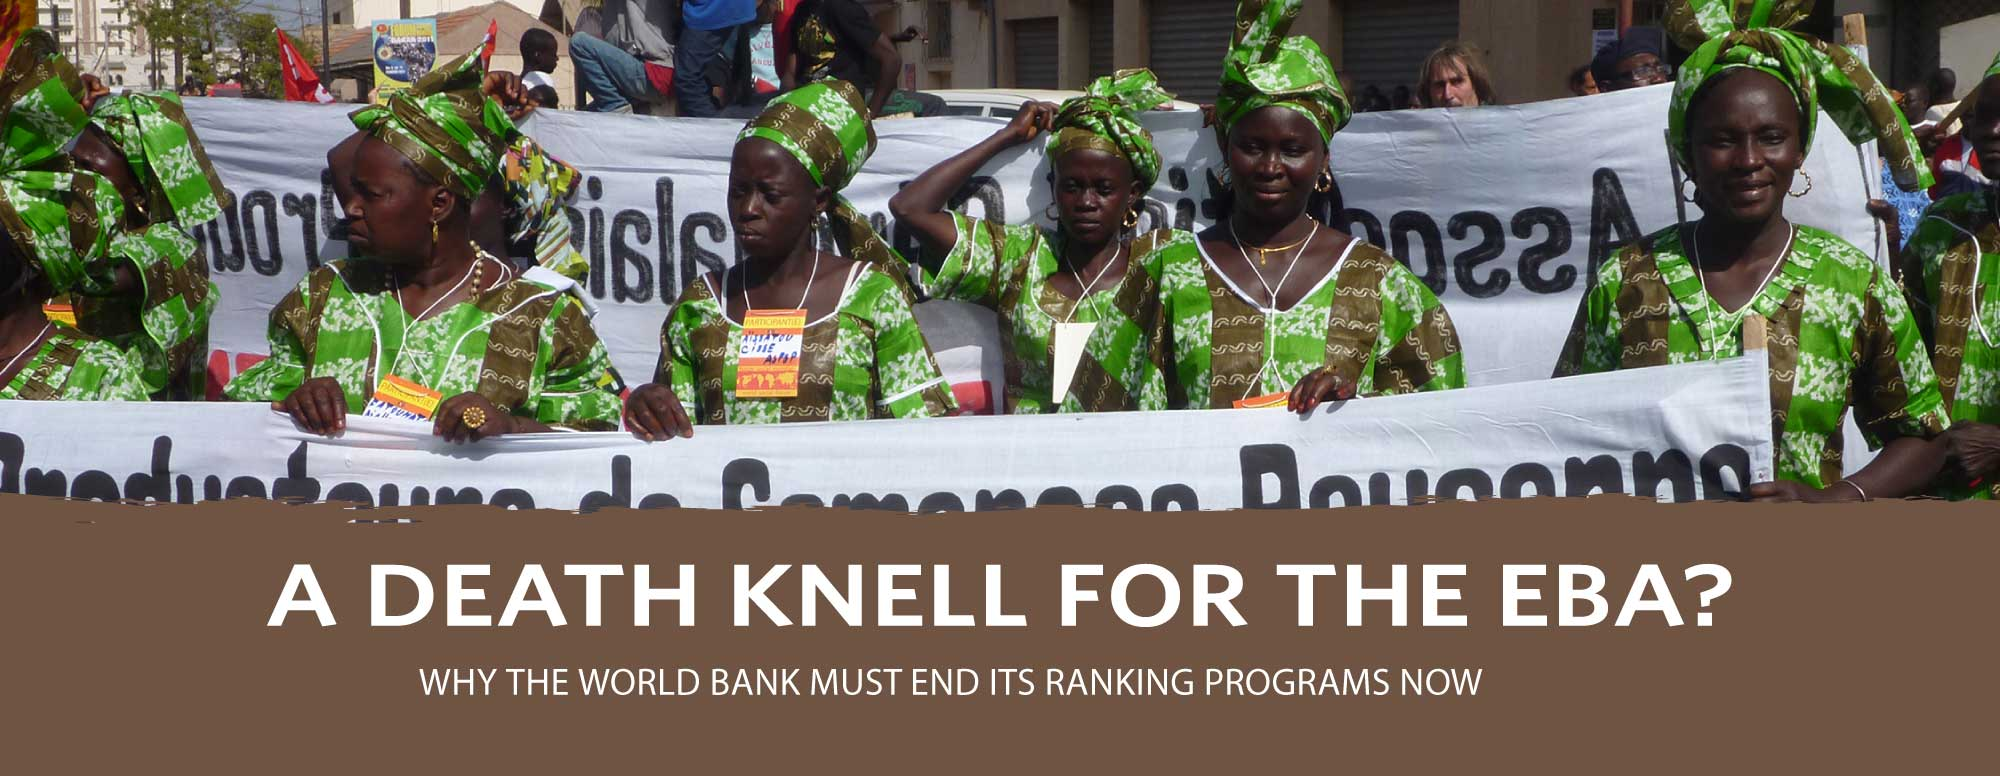 Women farmer organizations march to defend farmer seeds at the 2011 World Social Forum in Dakar. Credit: Awa Tounkara